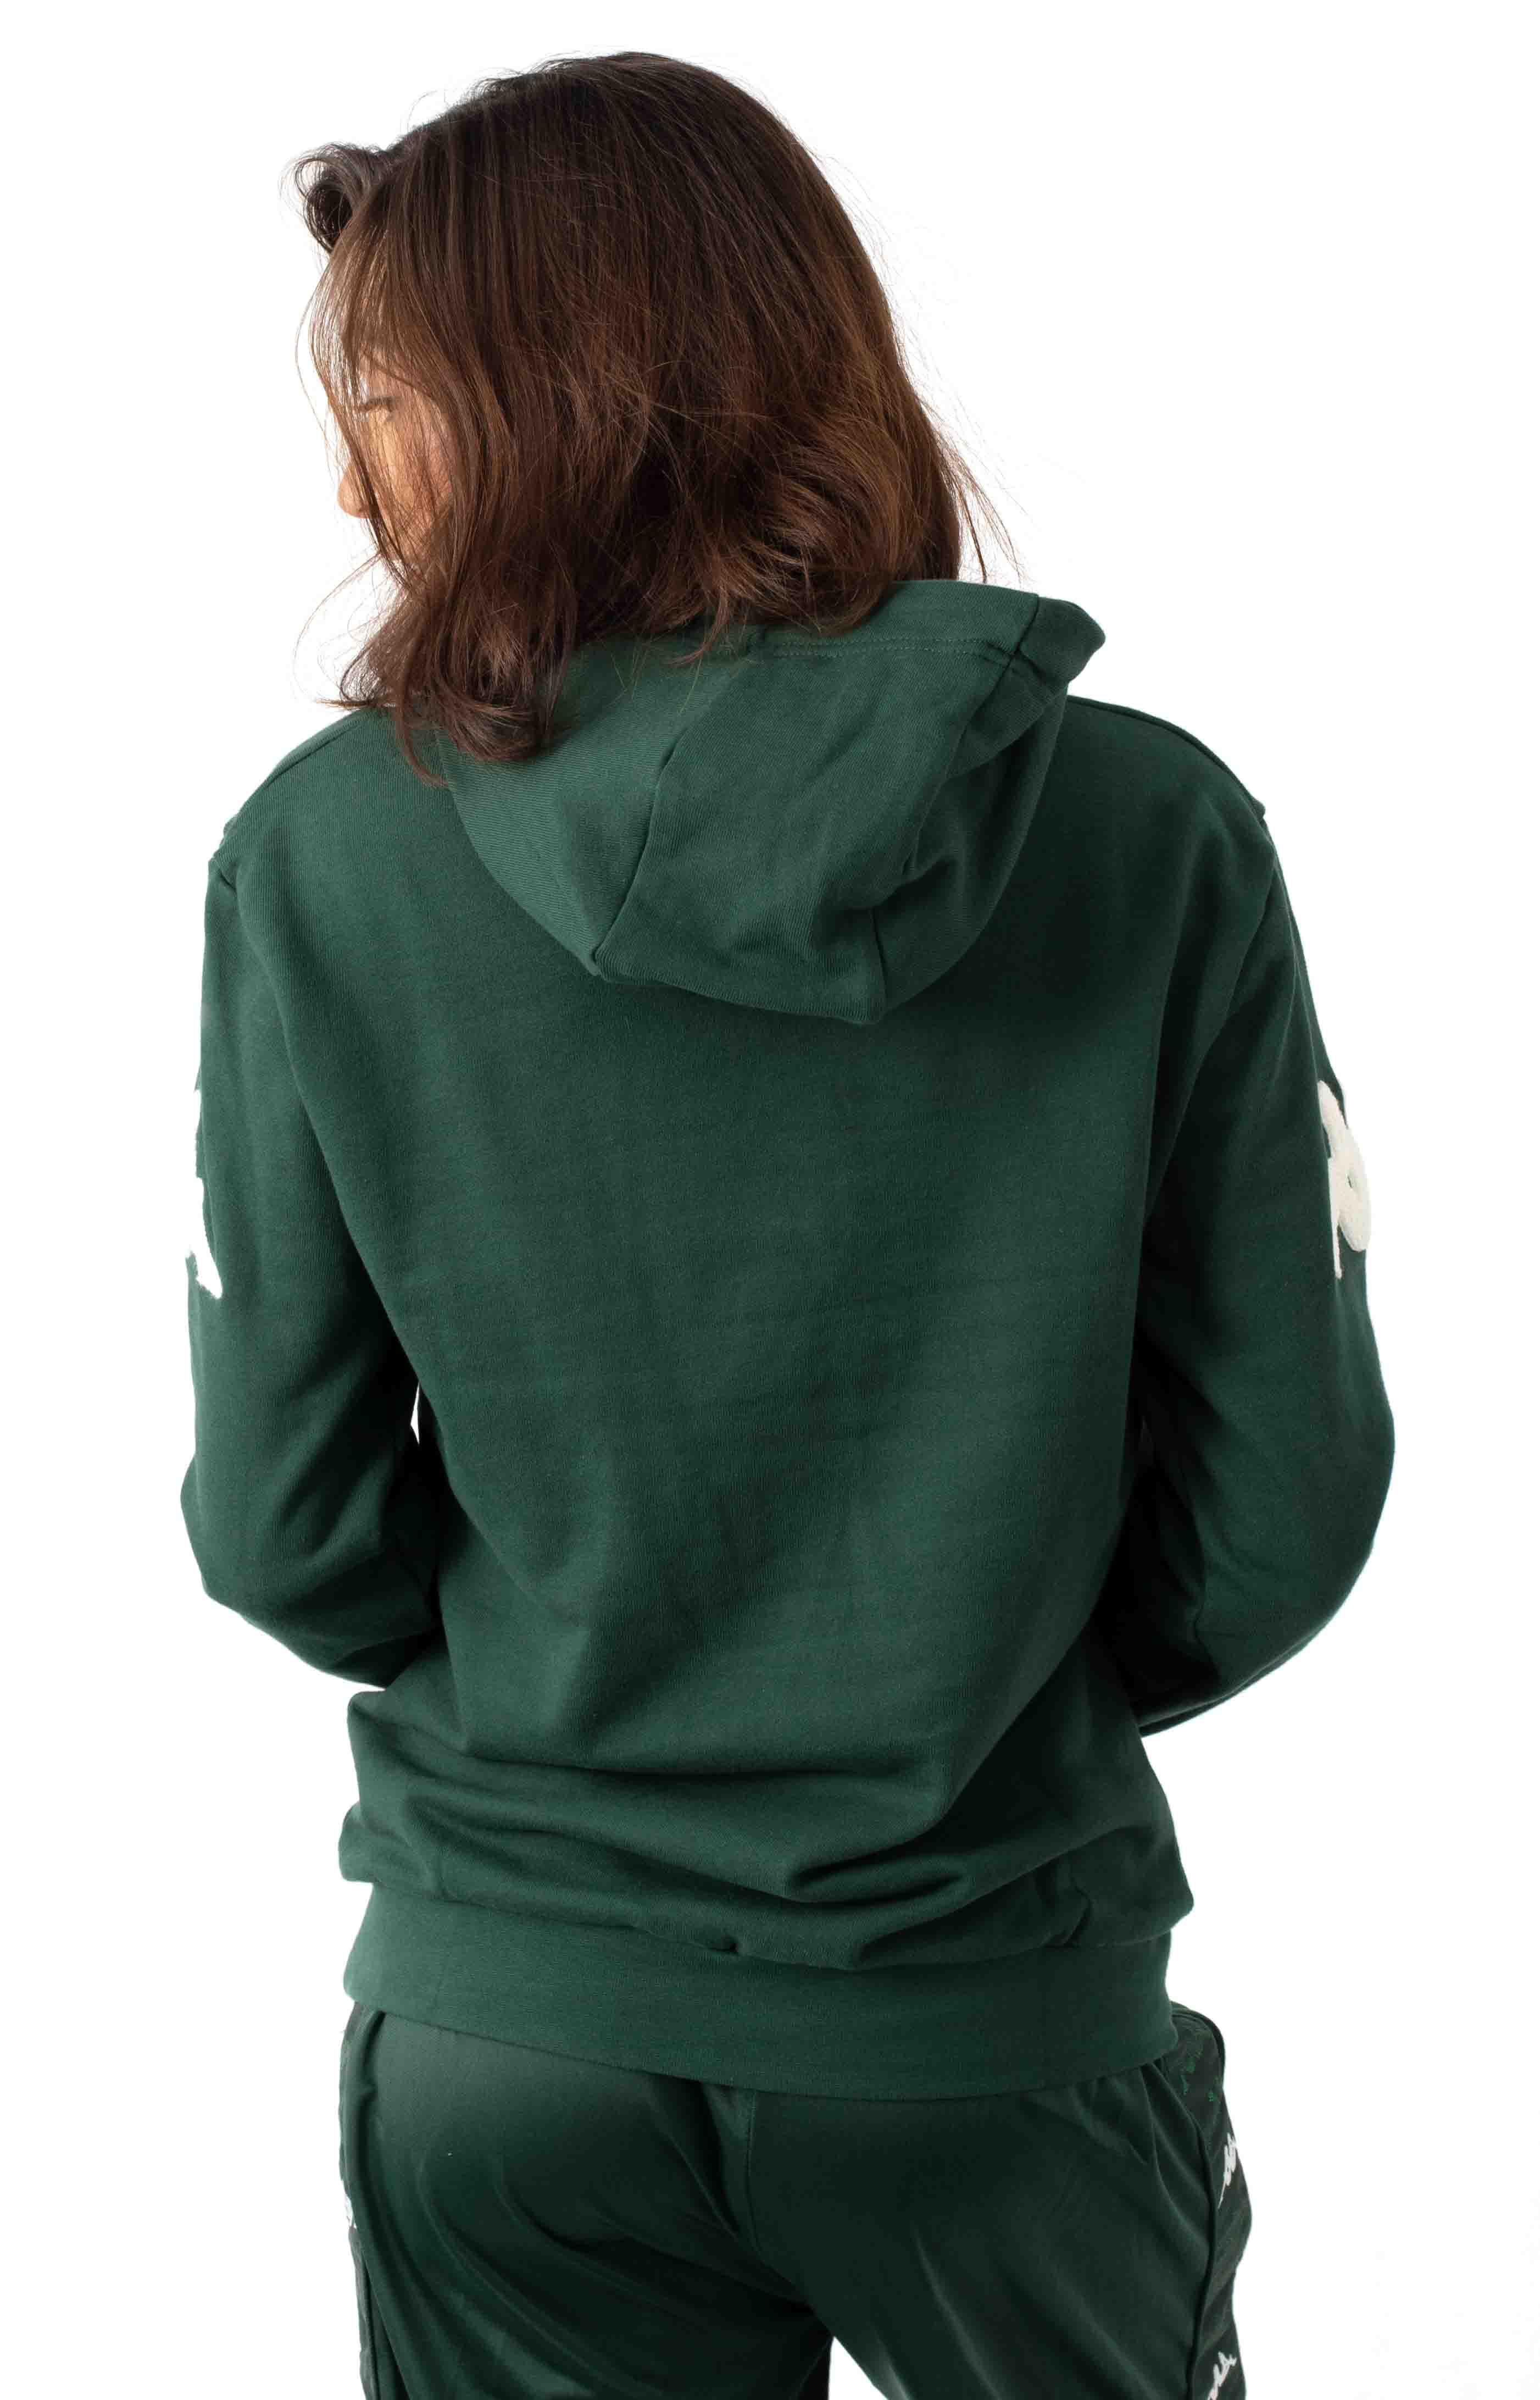 Authentic Bluvi Pullover Hoodie - Green 3